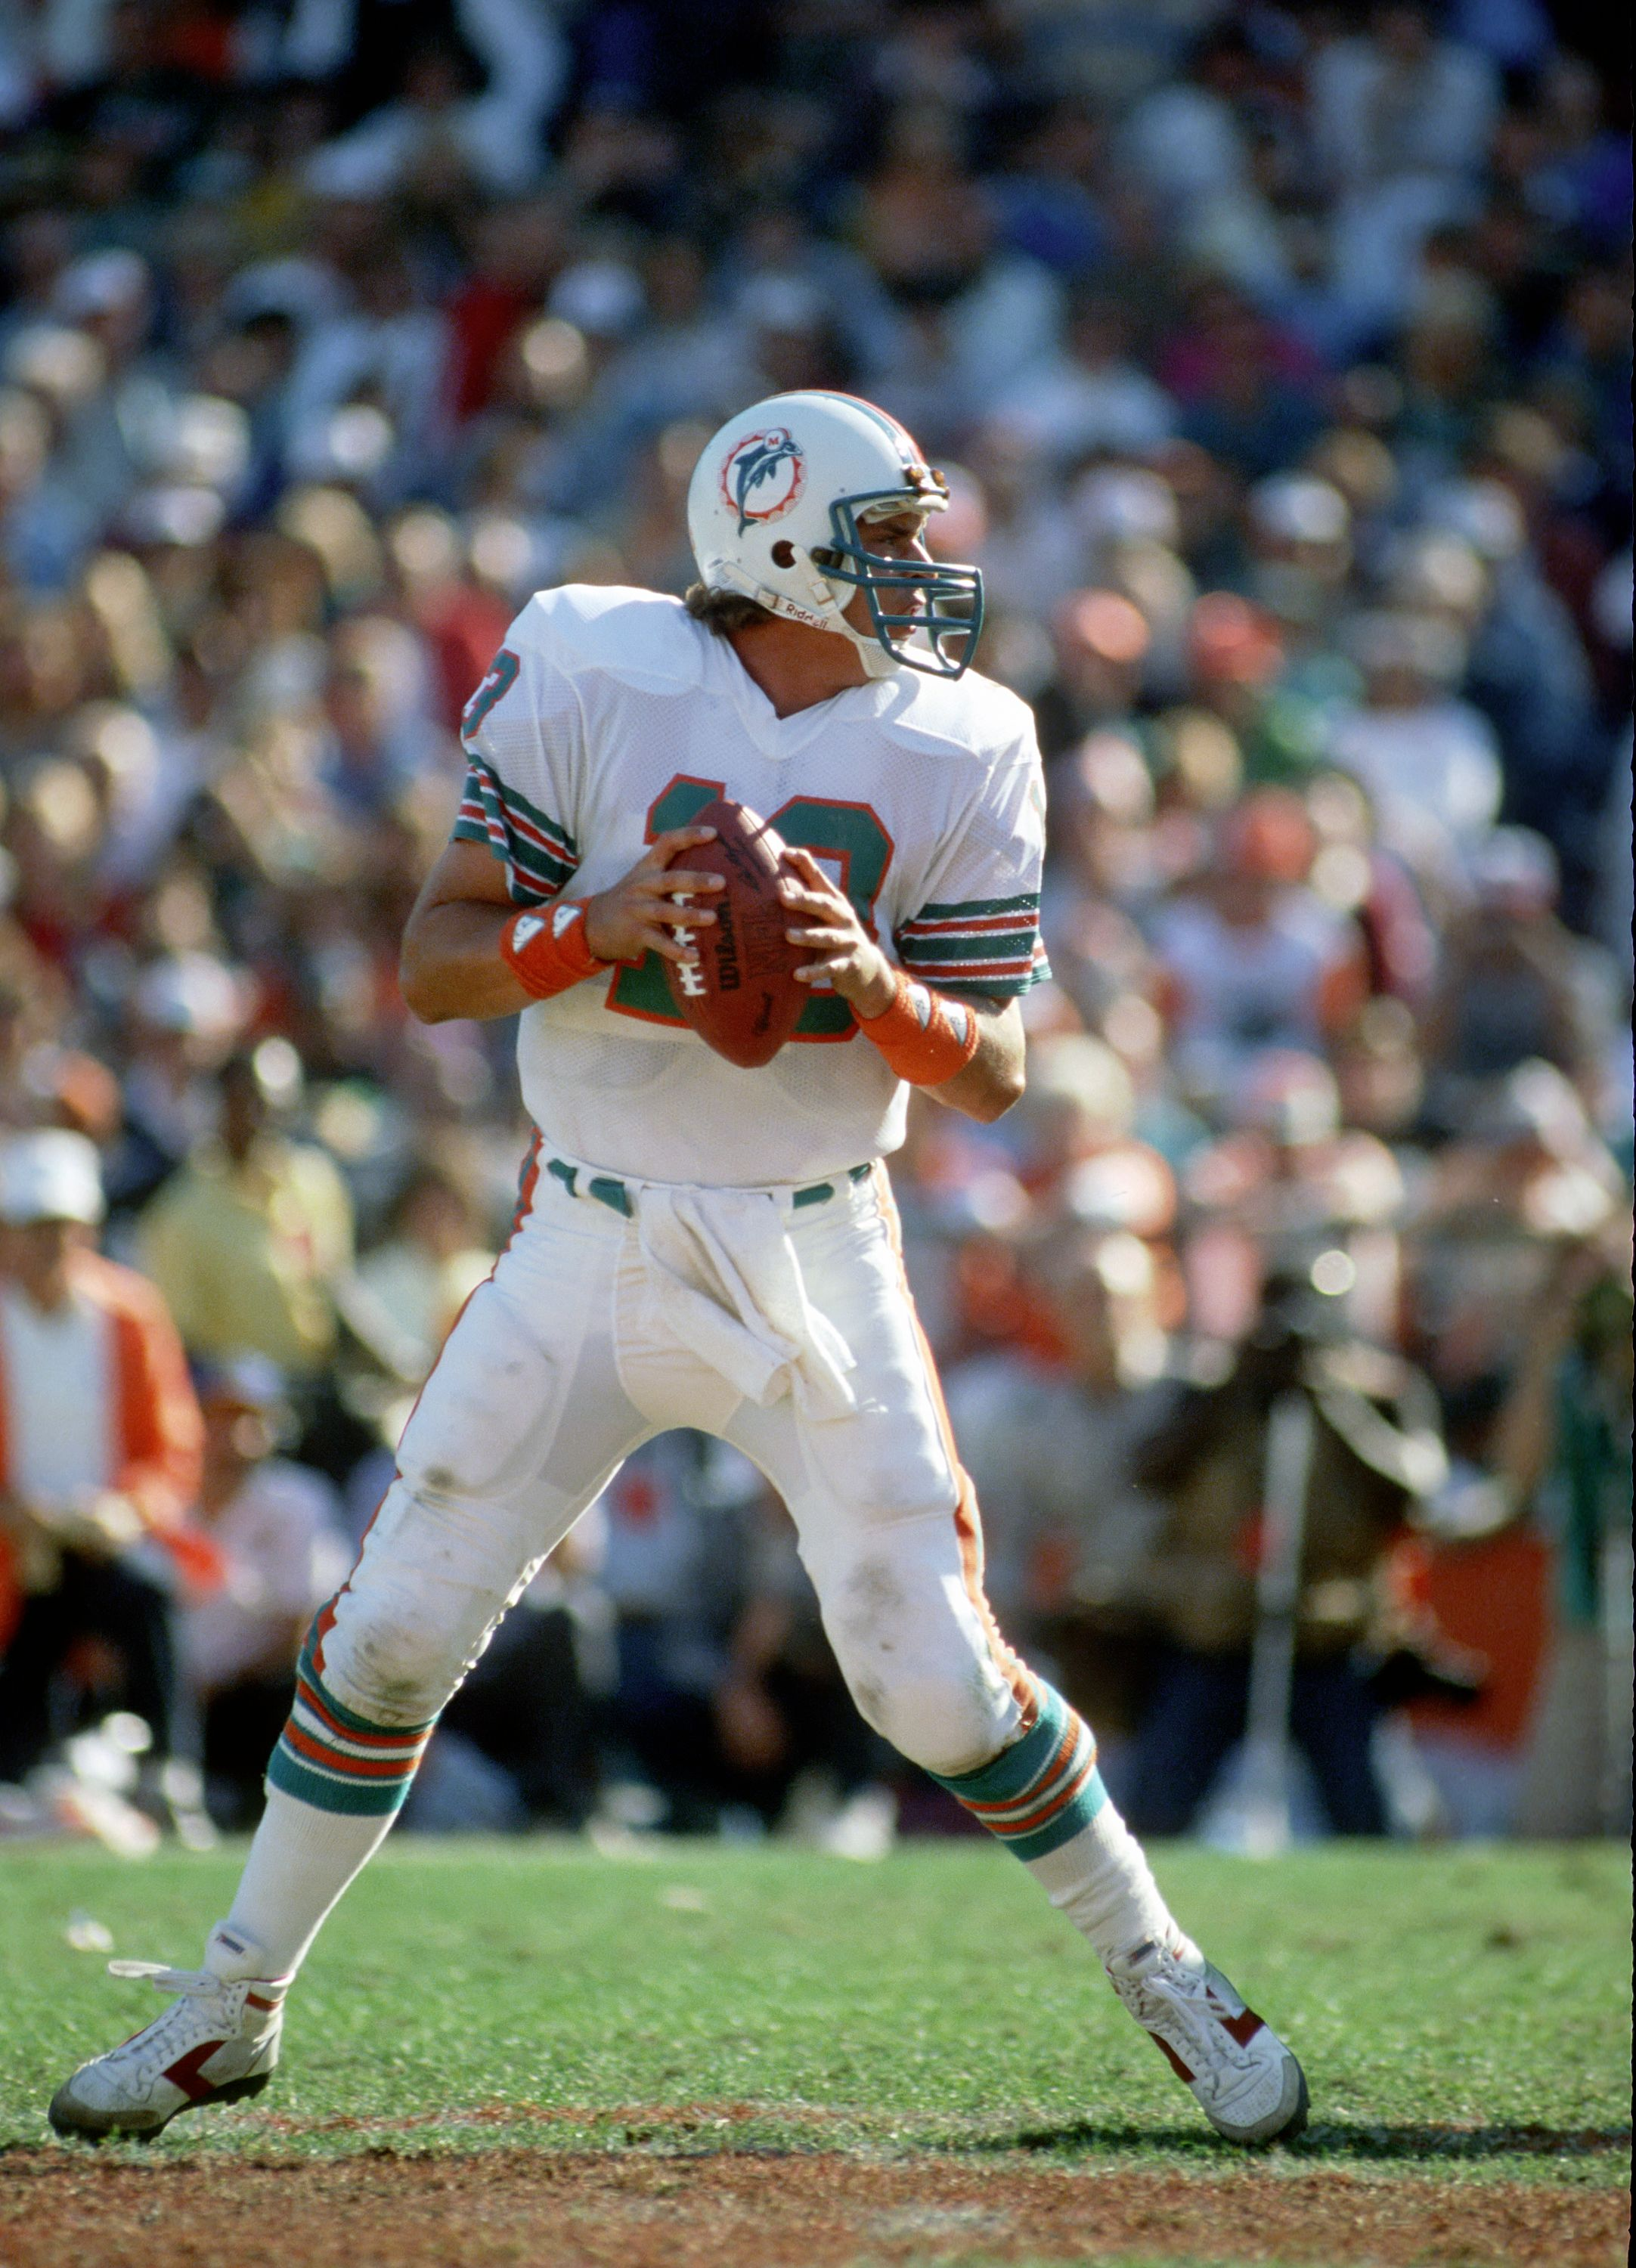 Dan Marino #13 of the Miami Dolphins looks to pass during the 1984 season AFC Championship game against the Pittsburgh Steelers at the Orange Bowl on January 6, 1985 in Miami, Florida. | Source: Getty Images